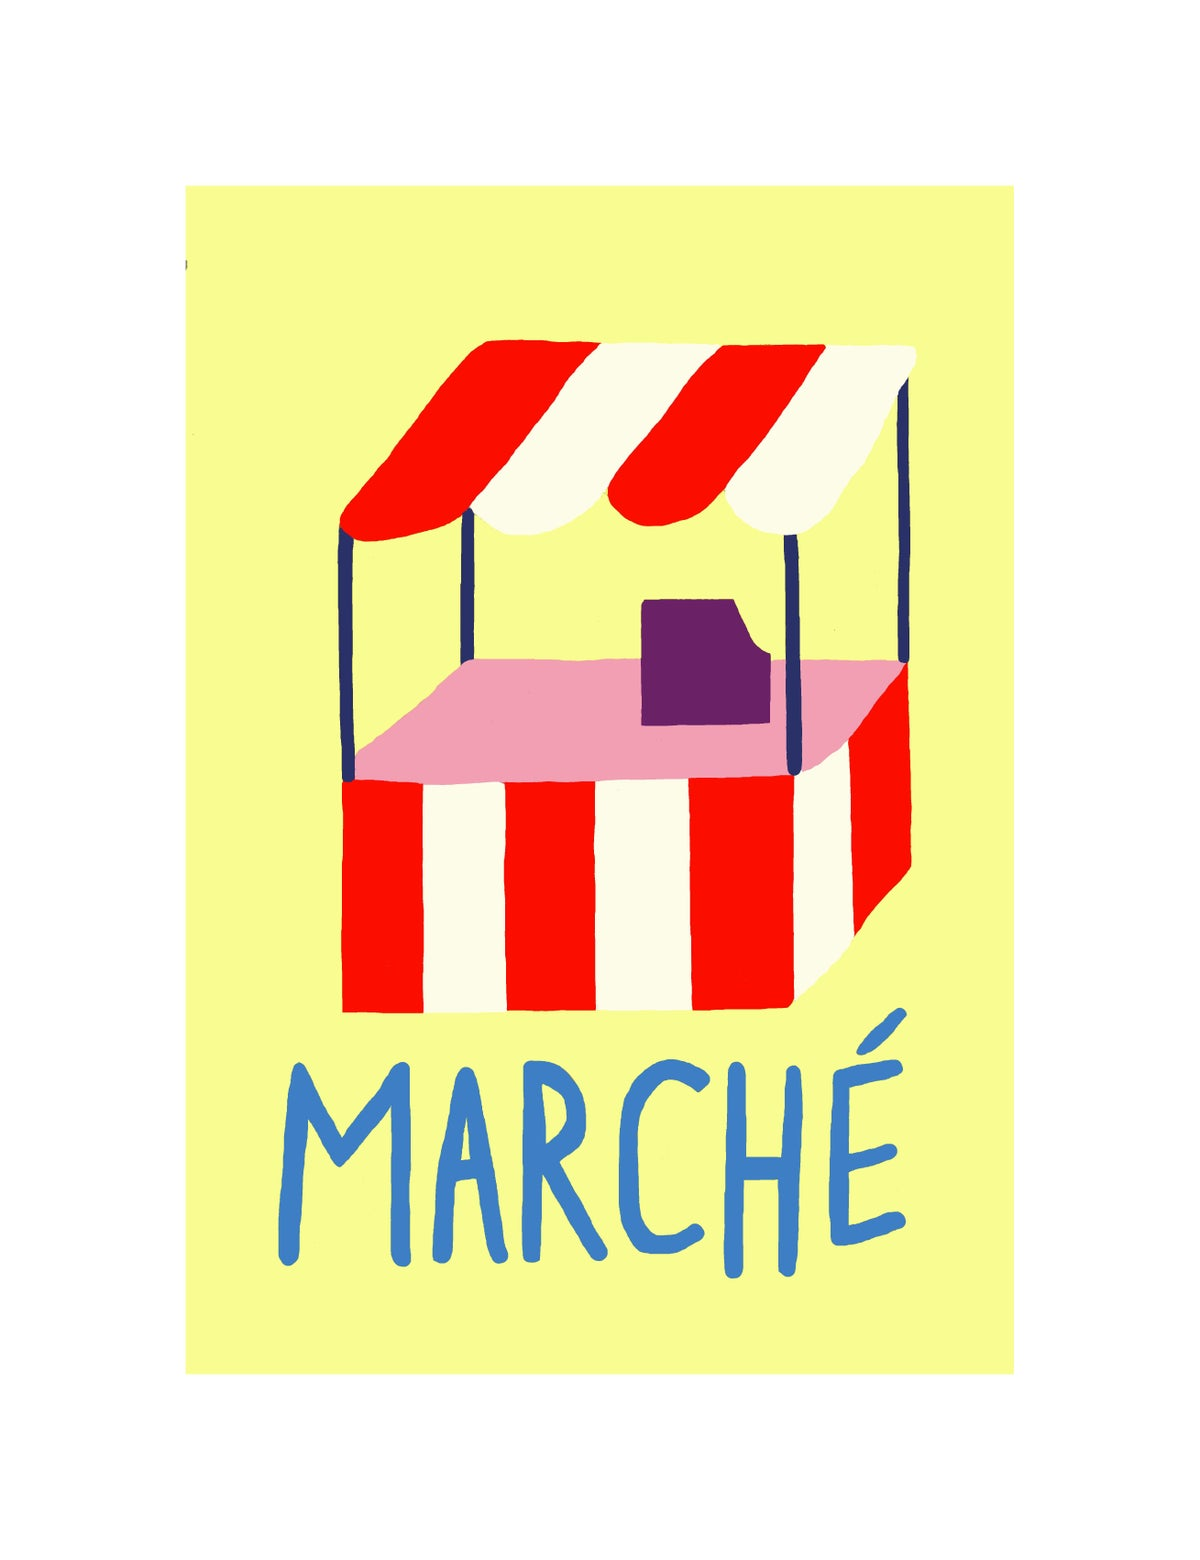 Image of Marche